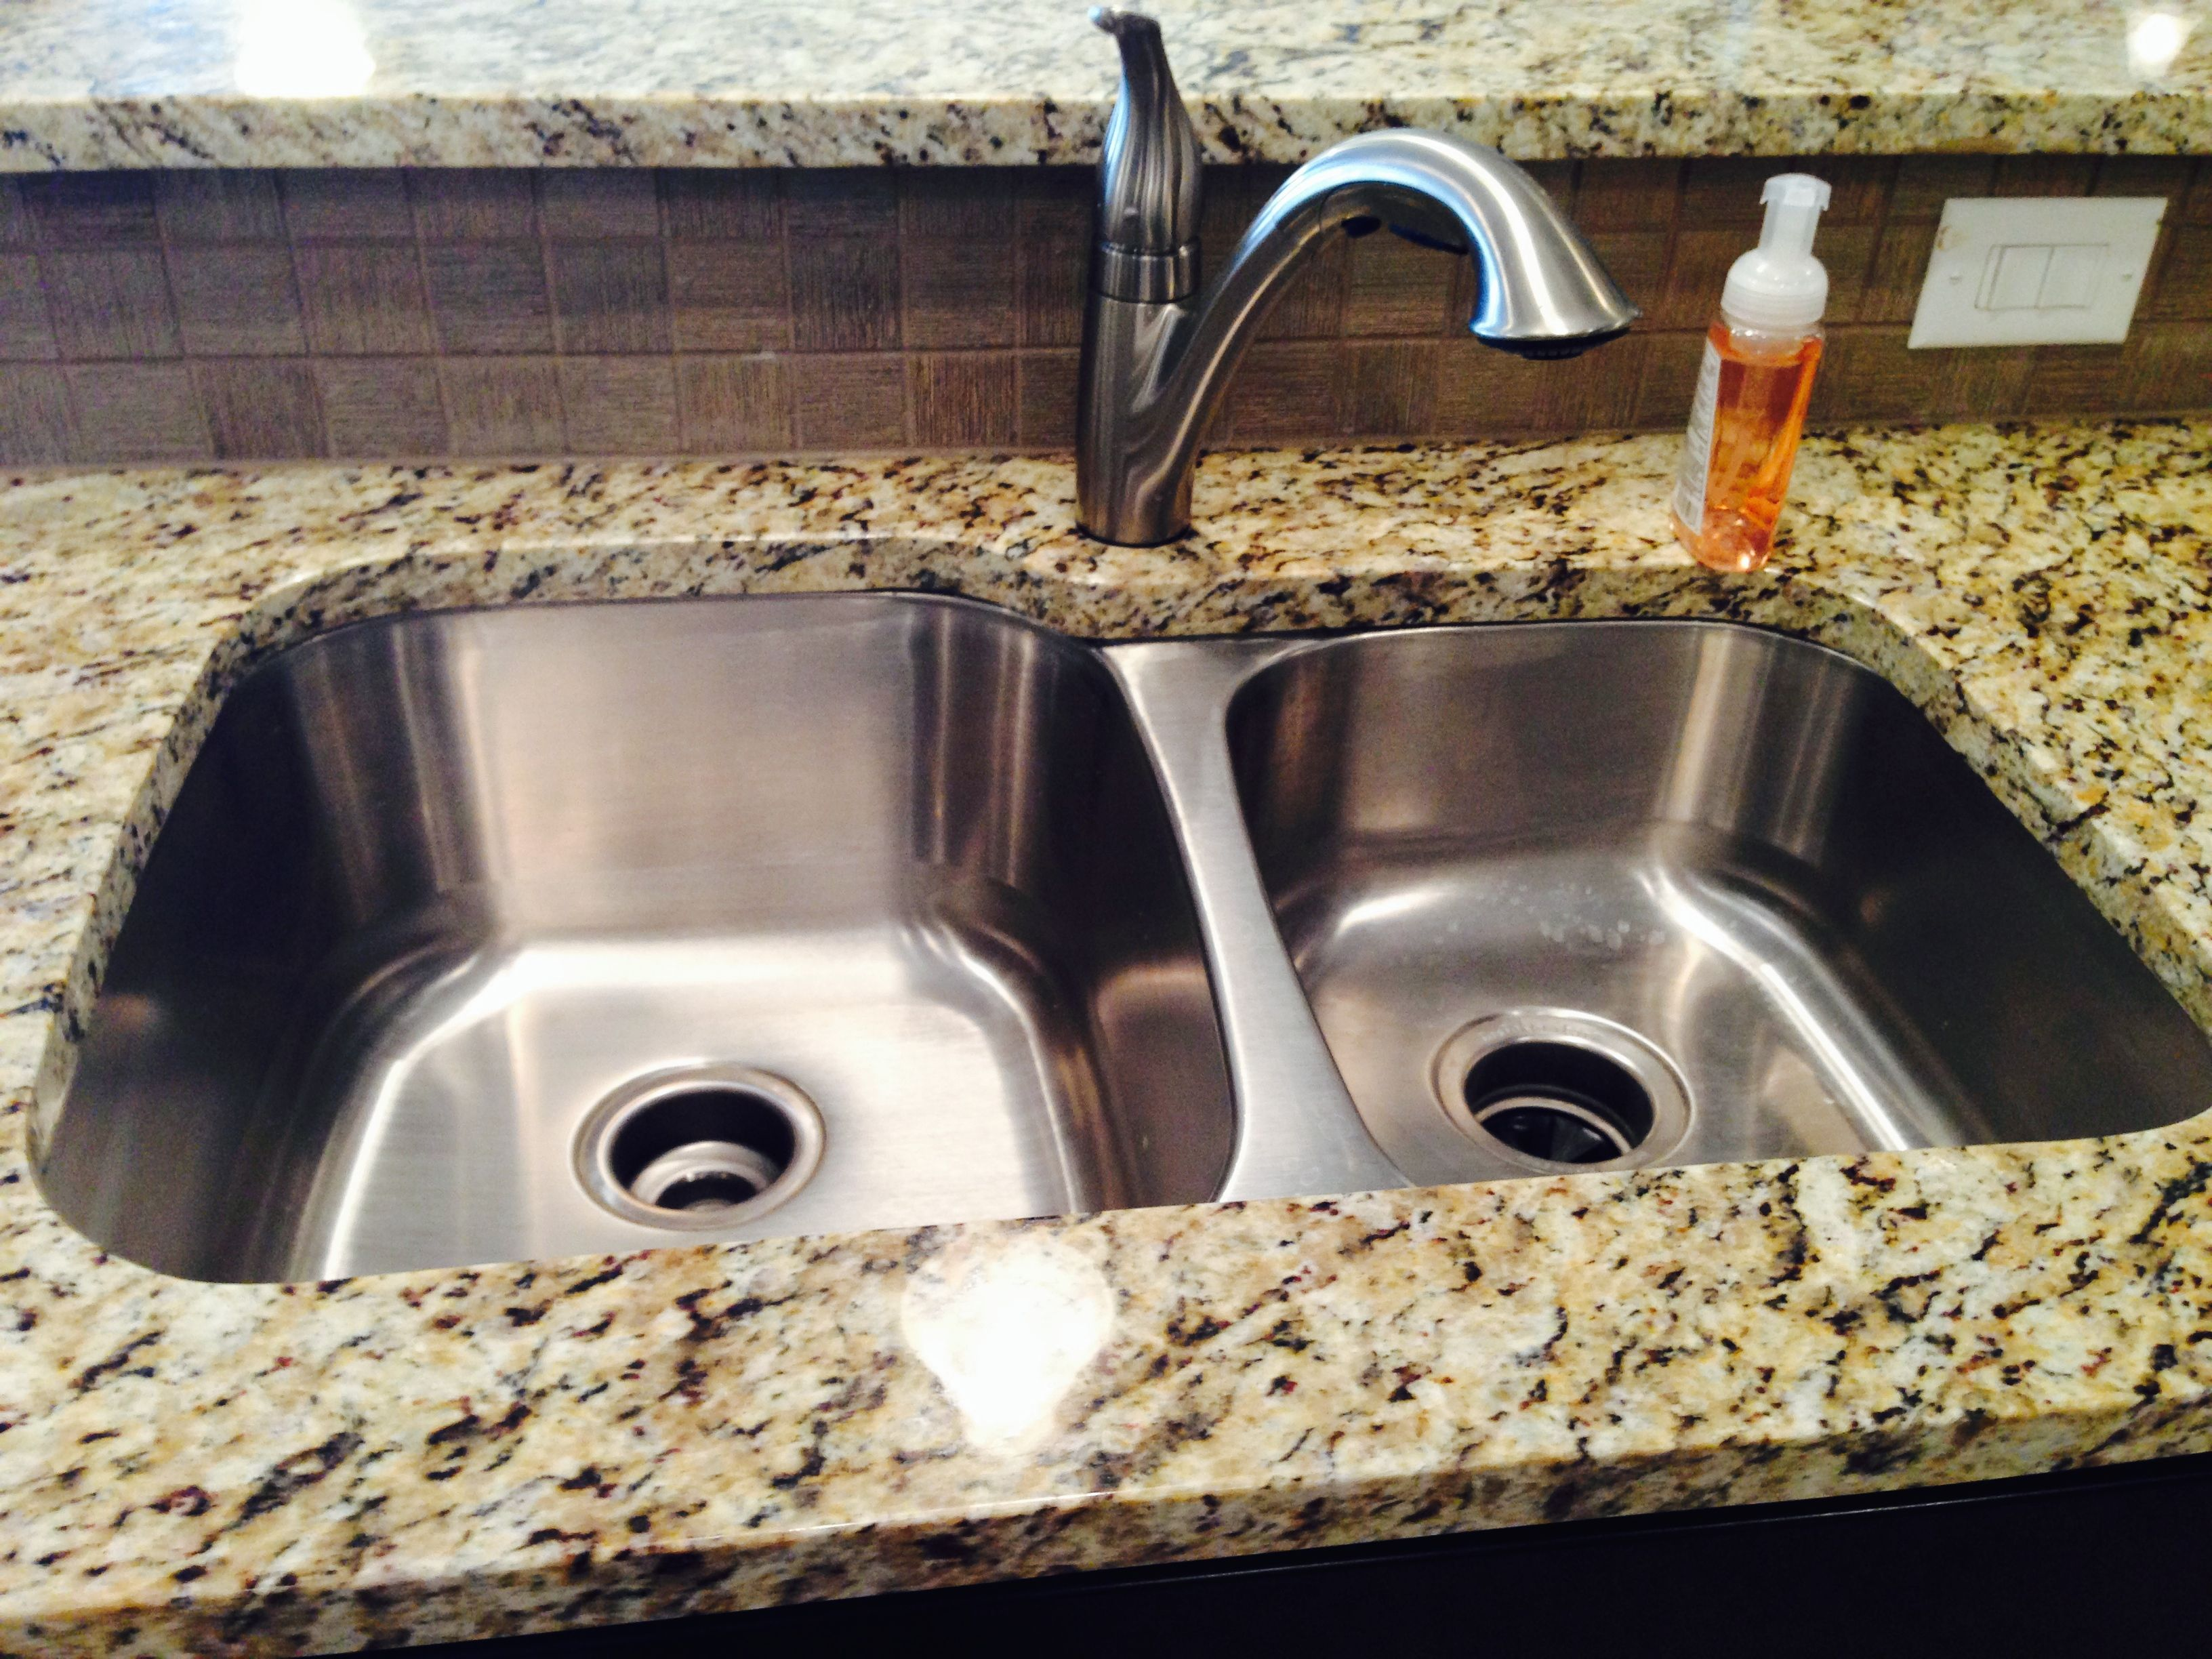 Medium image of 60 40 stainless steel undermount sink with granite countertop ceramic tile backsplash and moen